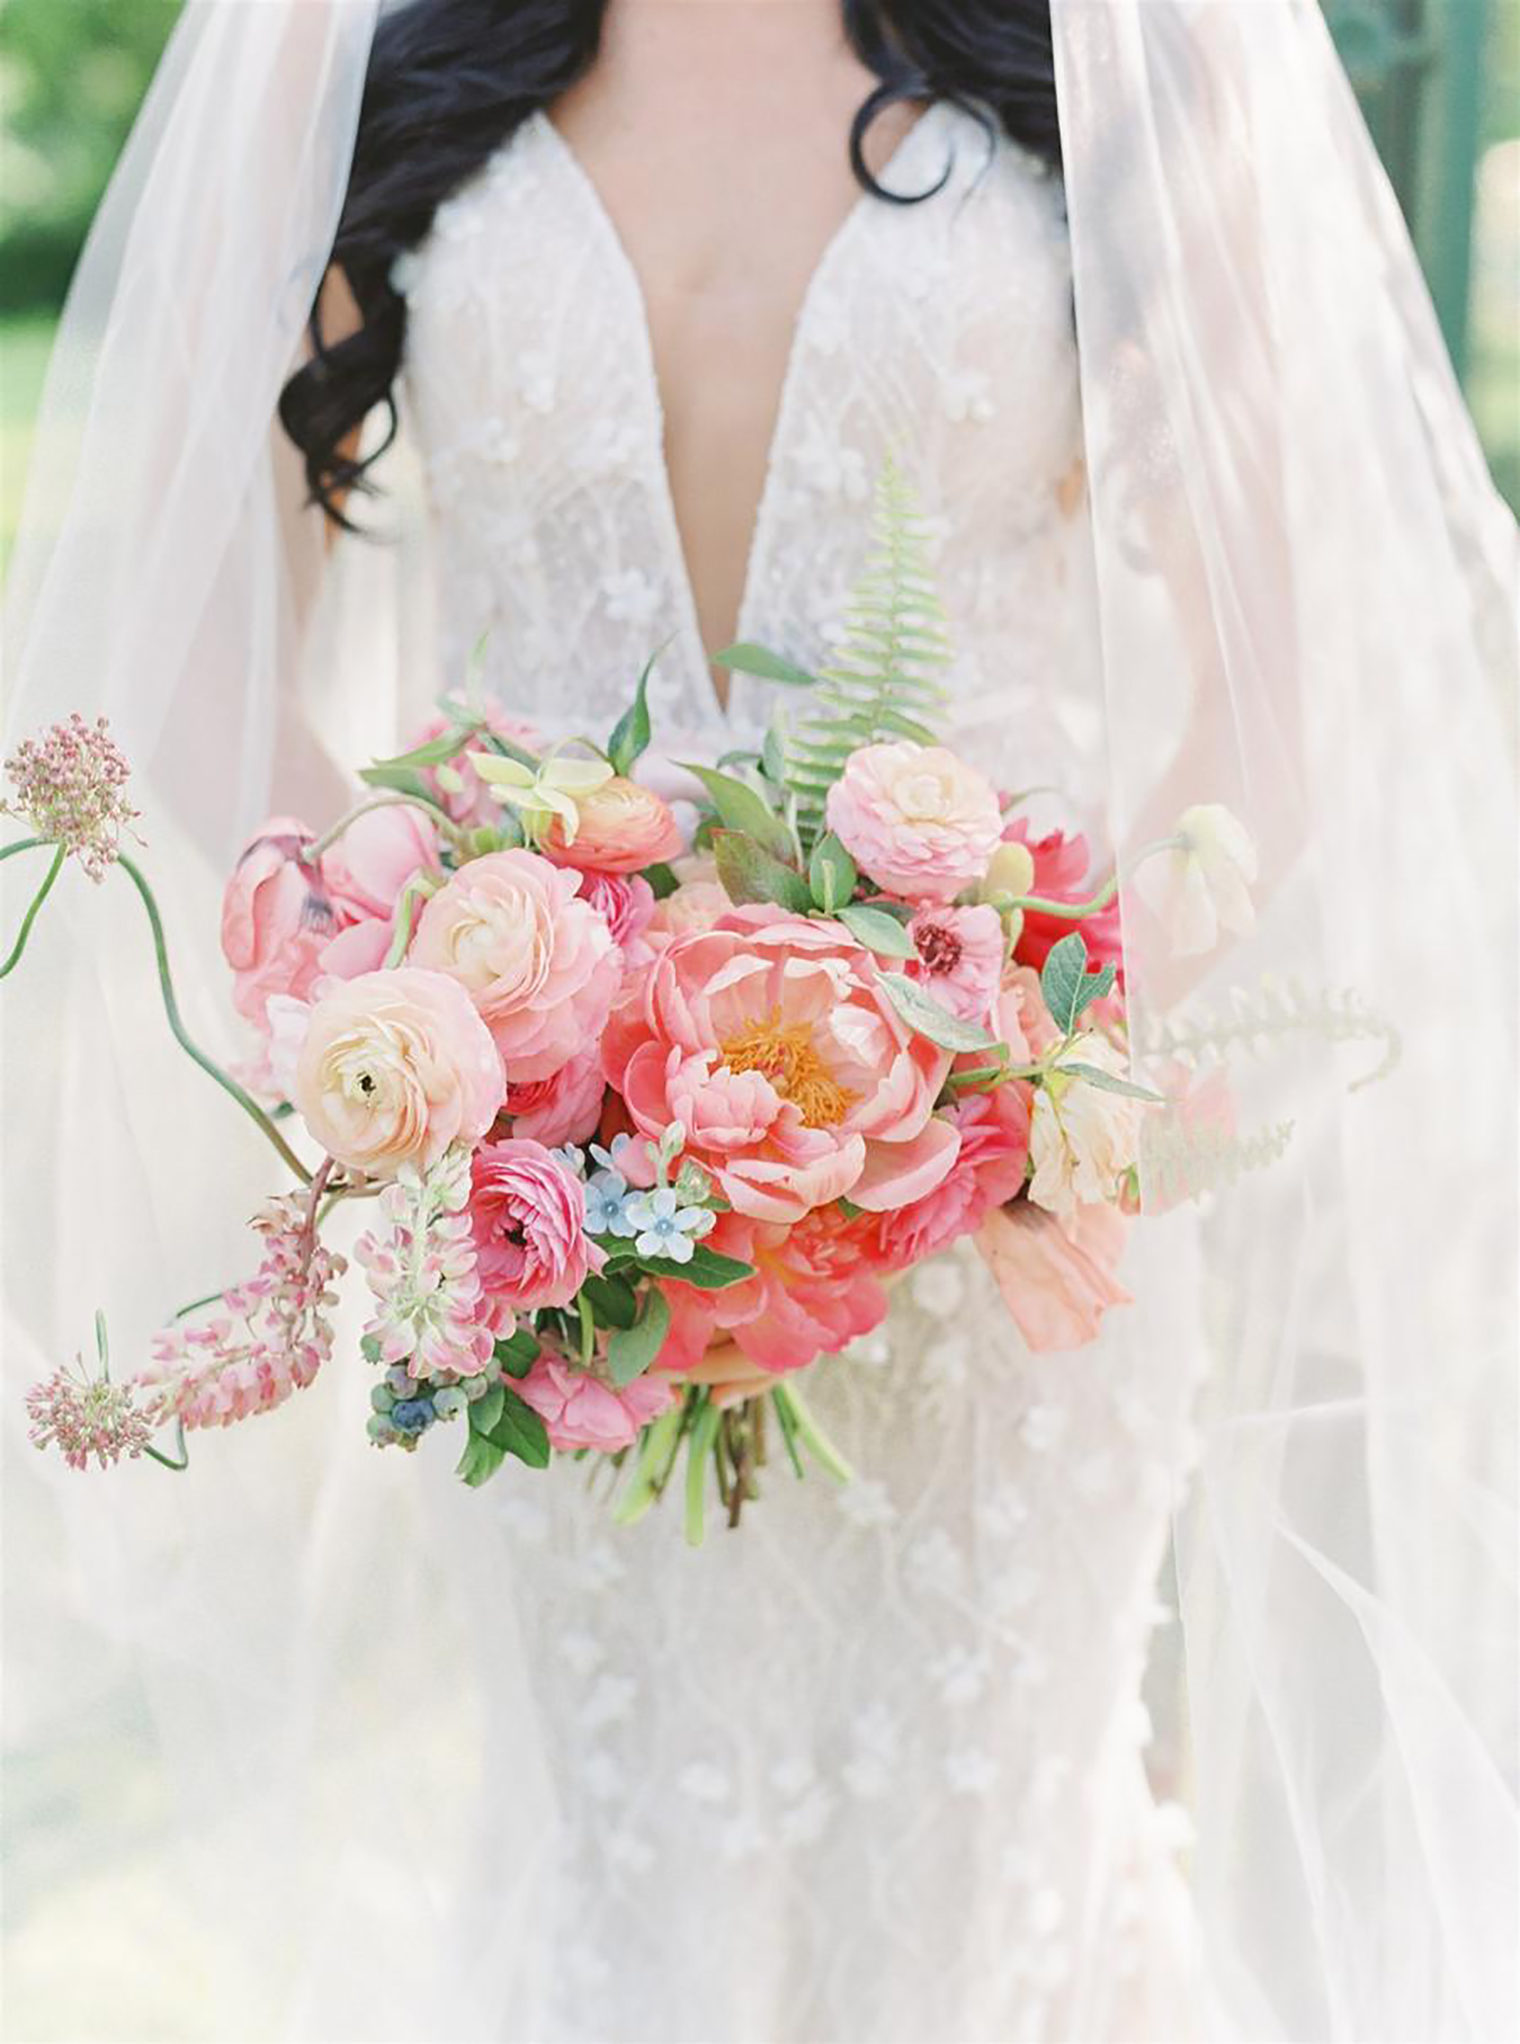 Wedding Florals Inspiration Photography by Lauren Fair and Wedding Bouquet by A P Bio